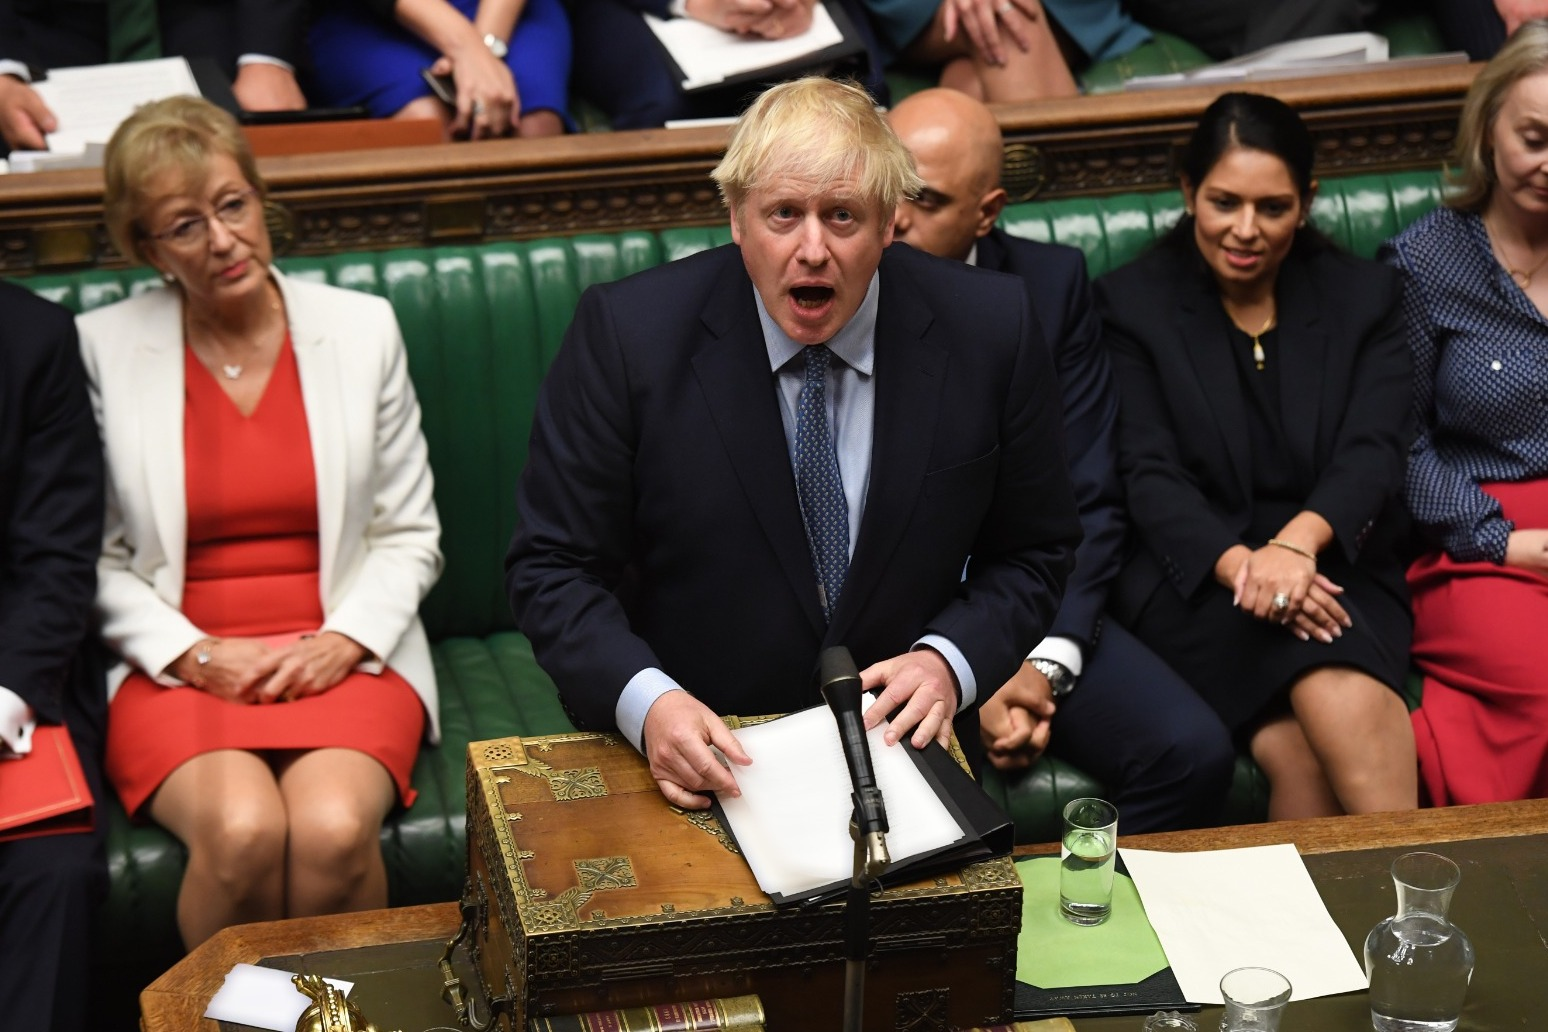 JOHNSON MAKES LATE PLEA TO MPS